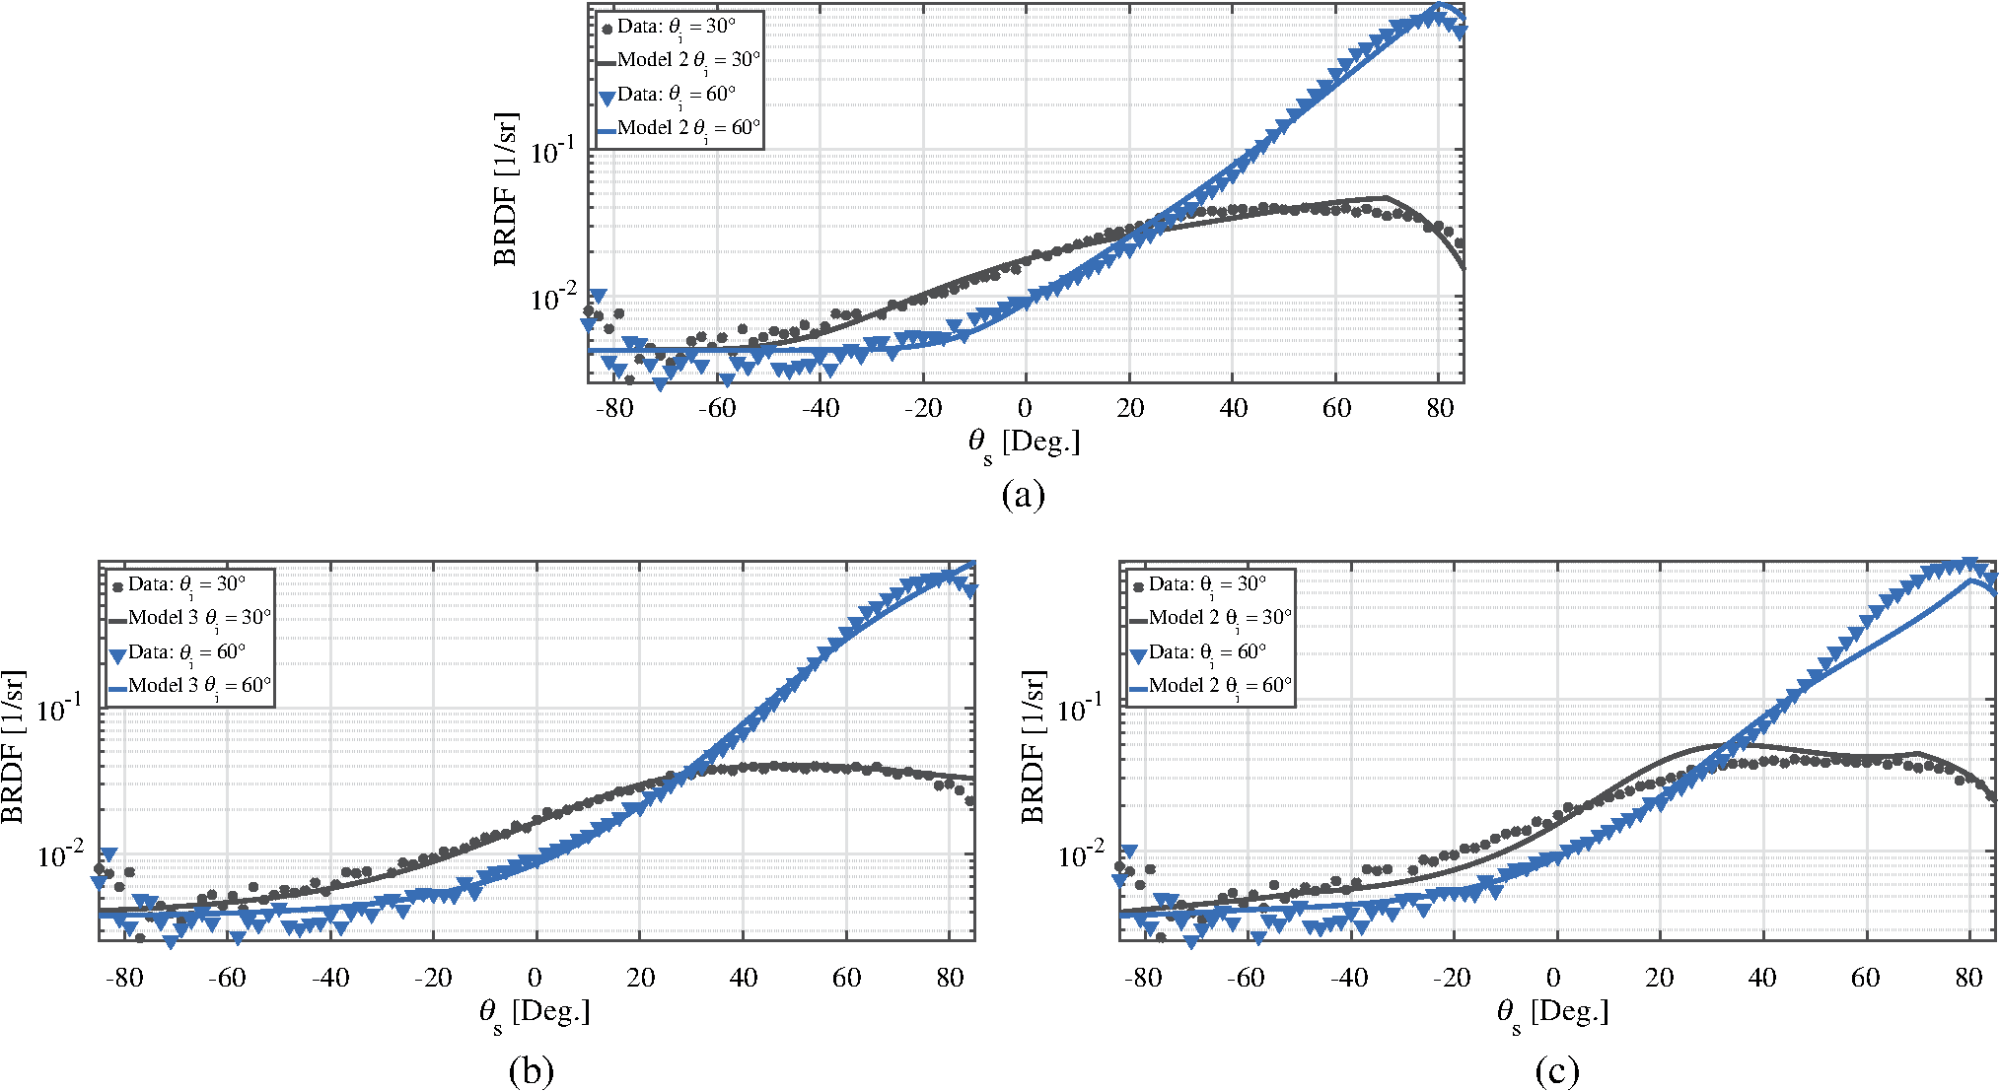 hight resolution of  b model 3 fits using the hyper cauchy distribution c model 2 fits using the krywonos distribution